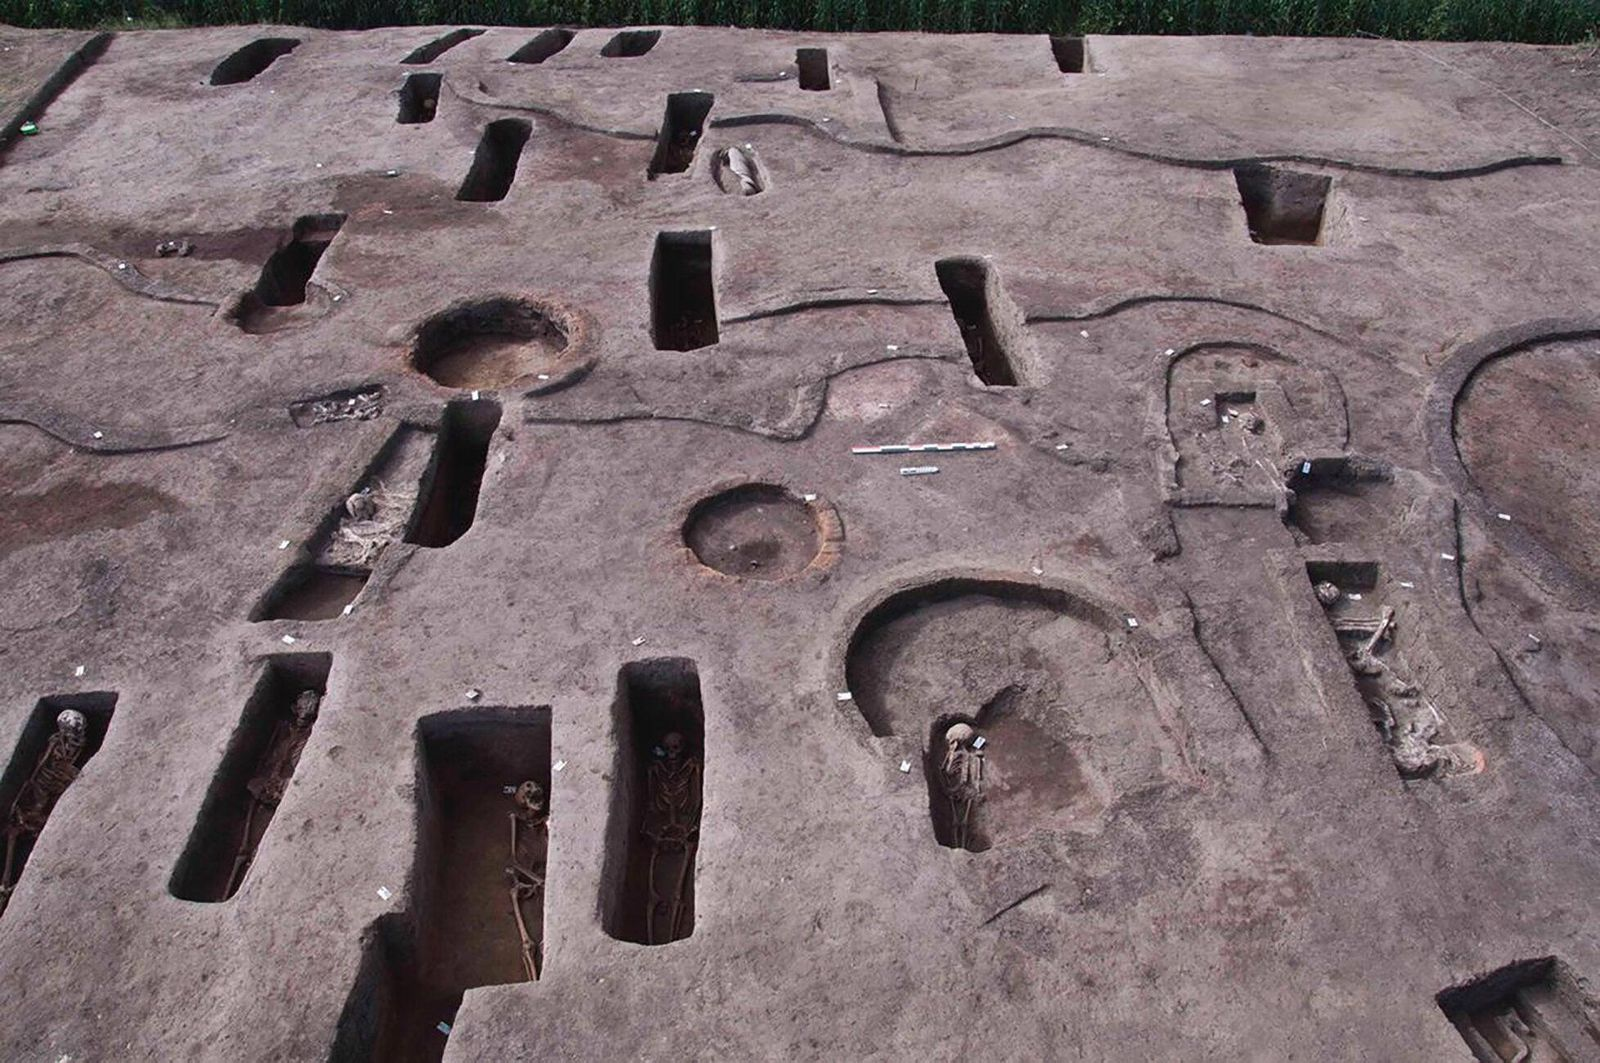 Archaeologists Discover 110 Ancient Egyptian Tombs Along the Nile Delta